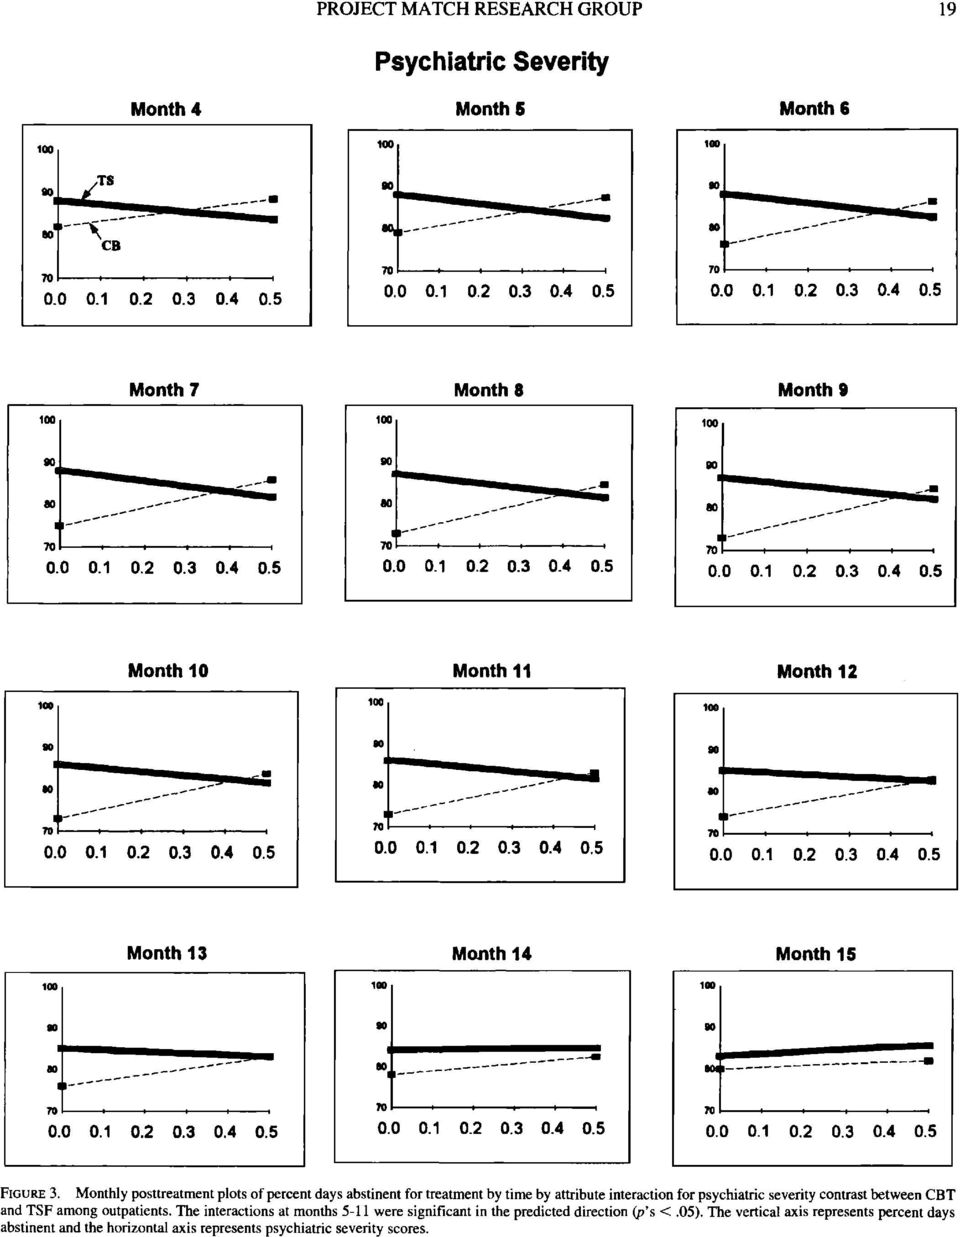 Monthly posttreatment plots of percent days abstinent for treatment by time by attribute interaction for psychiatric severity contrast between CBT and TSF among outpatients.